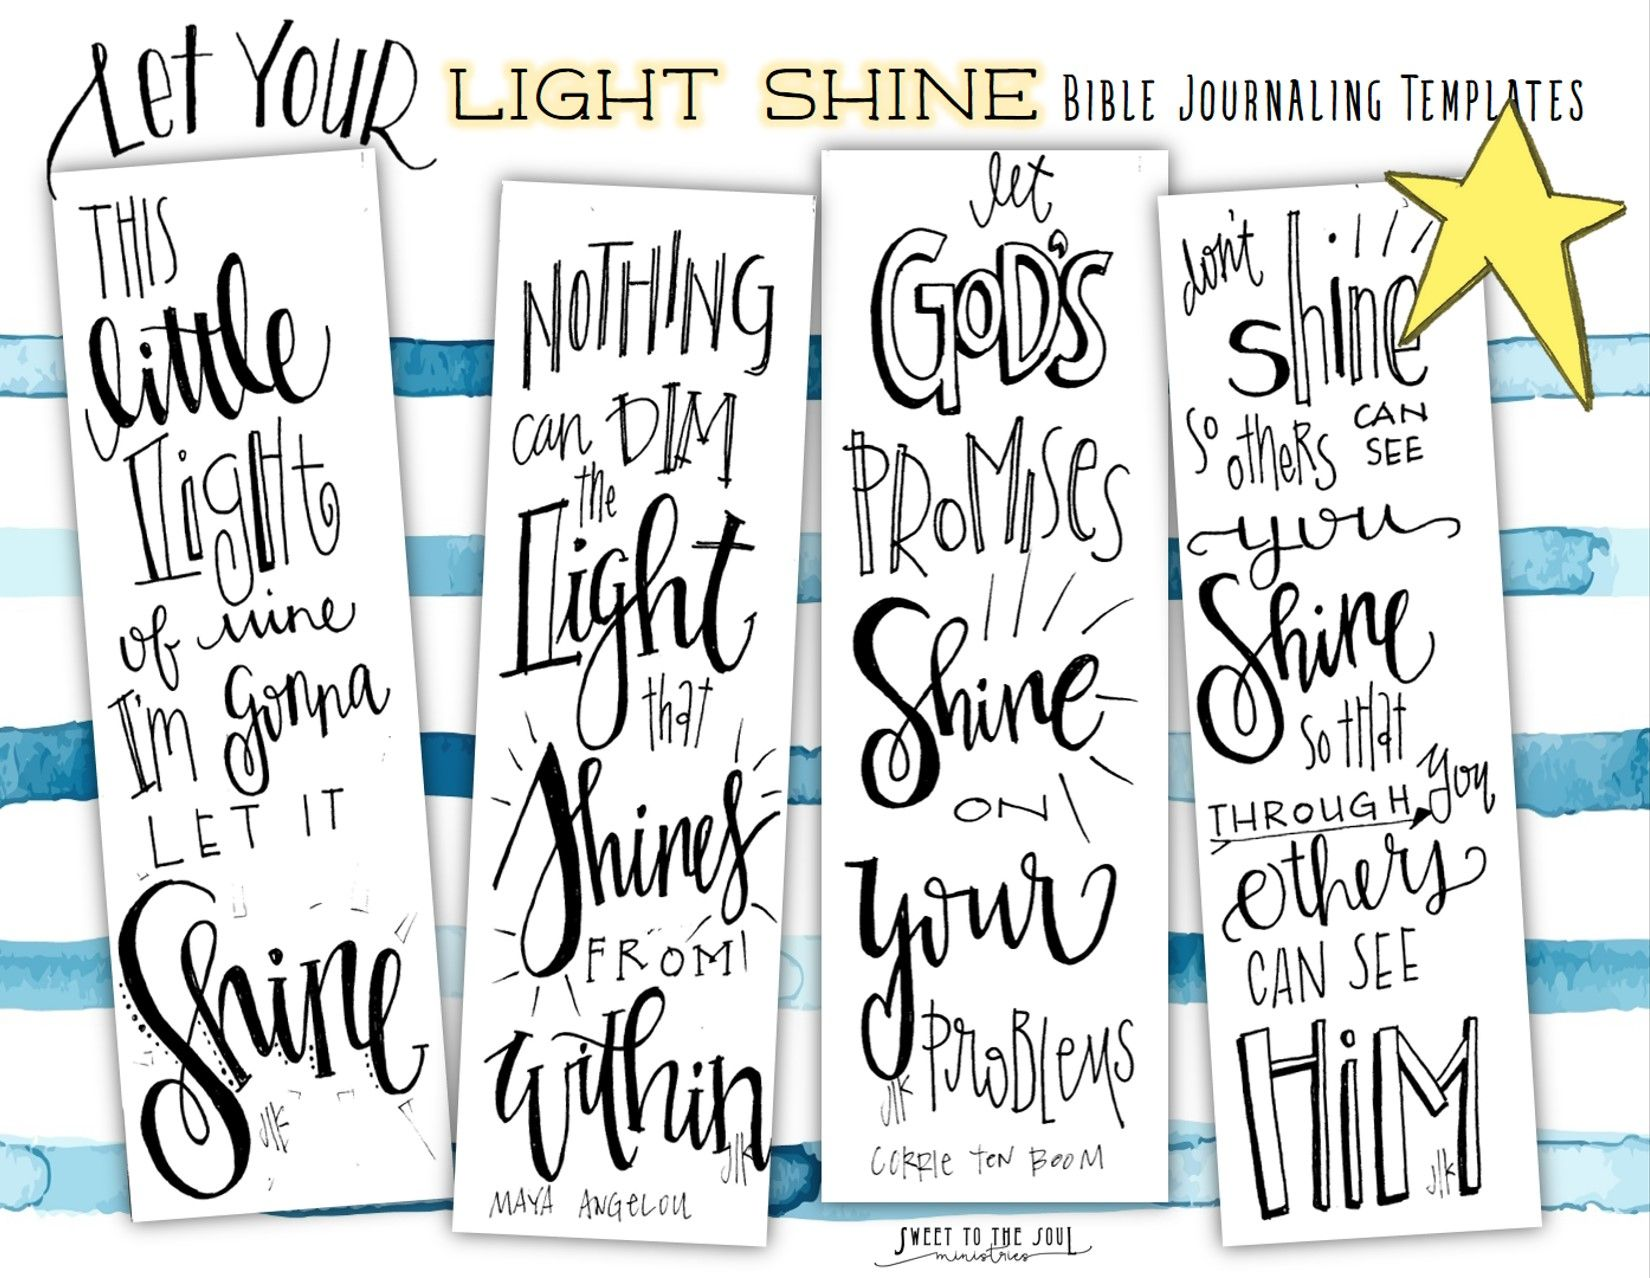 free bible journaling templates let your light shine let your